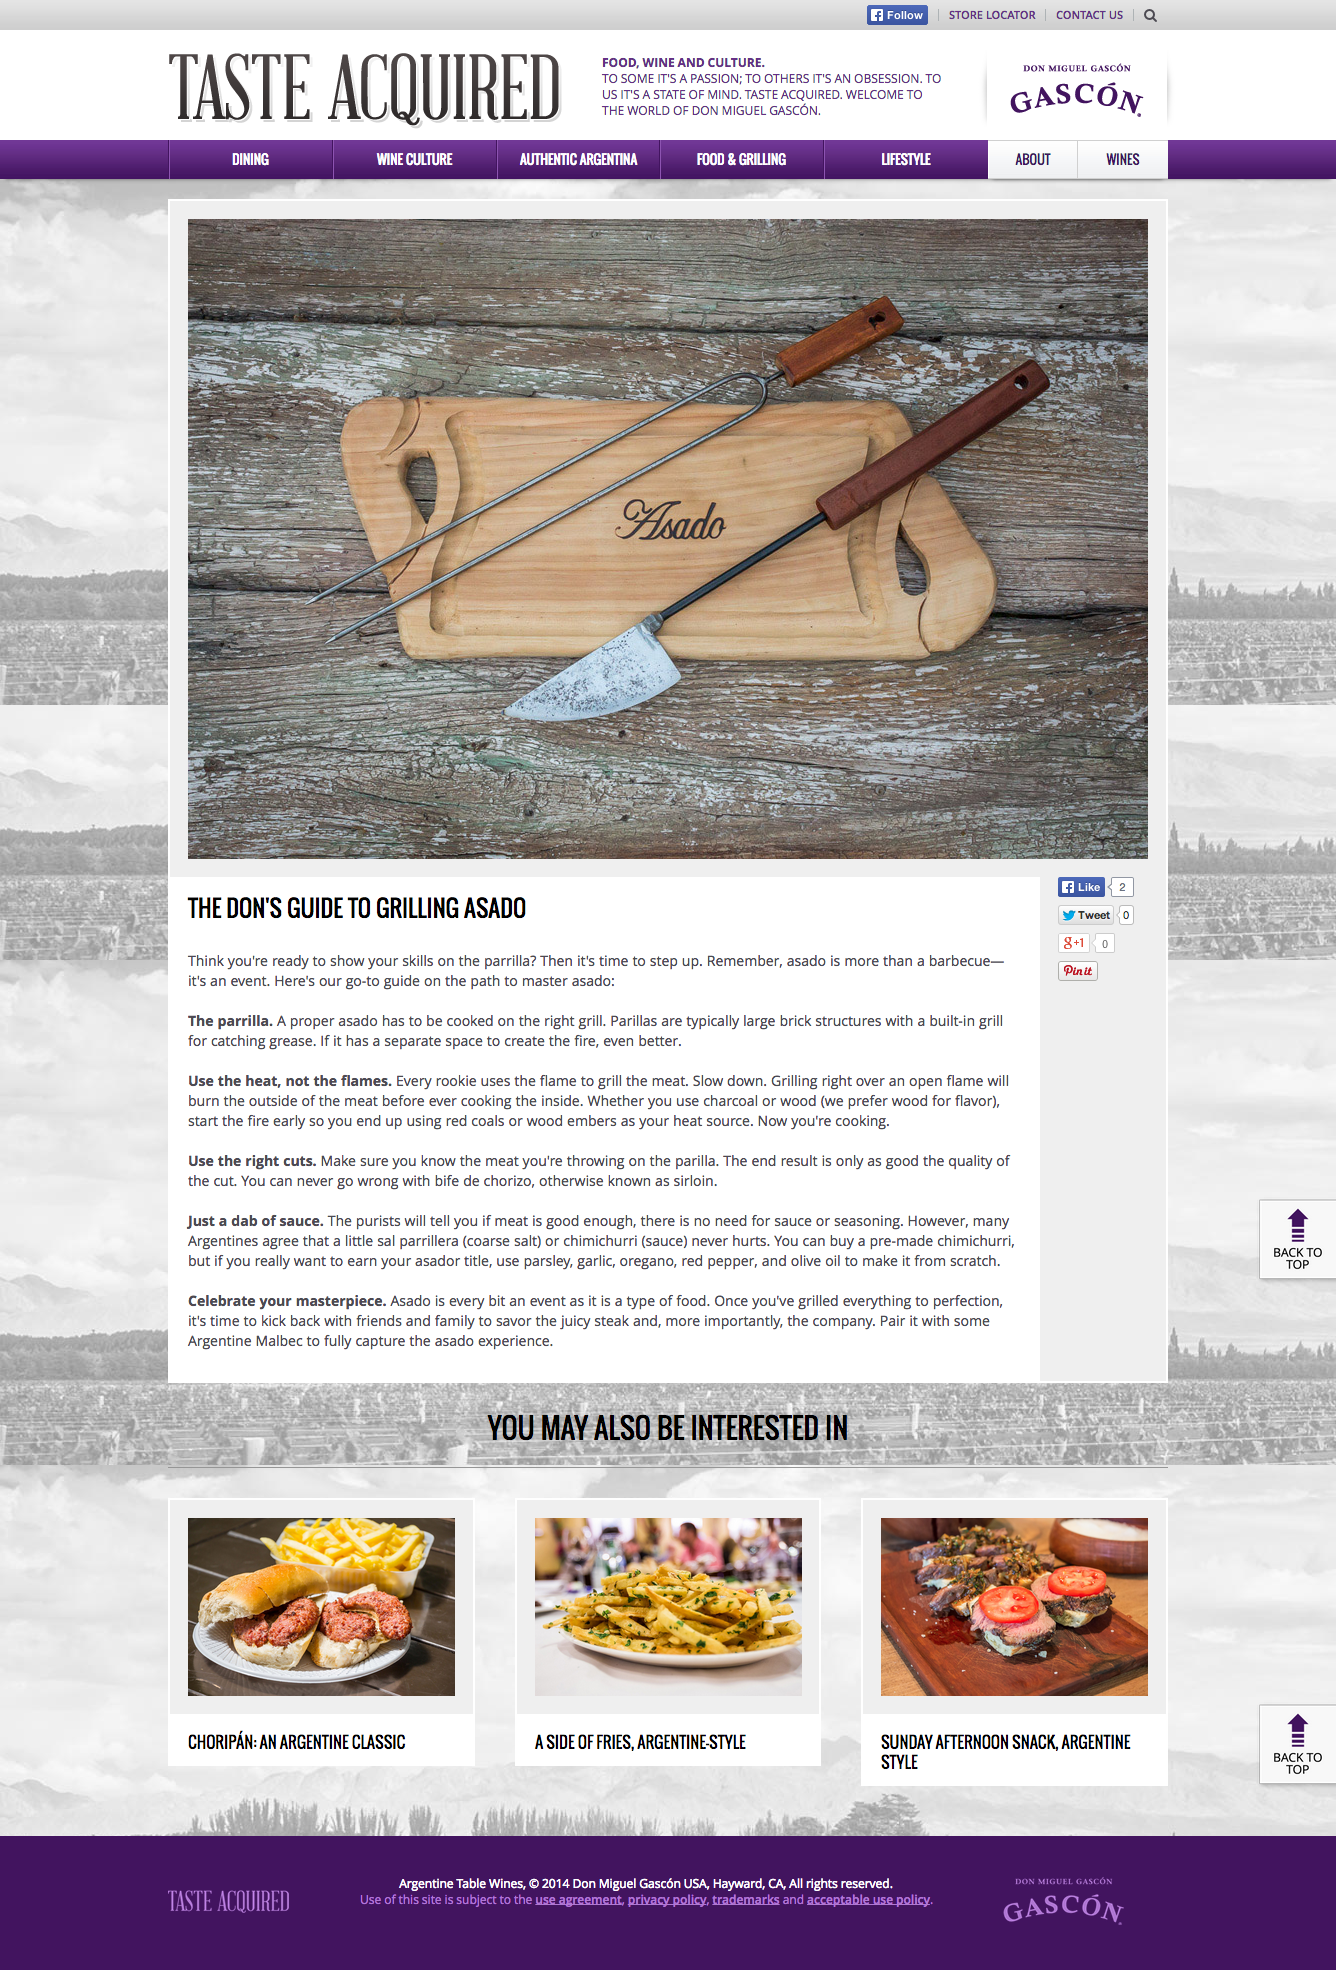 screencapture-www-gasconwine-com-Food-and-Grilling-asado-grilling-parilla-argentina-php.png